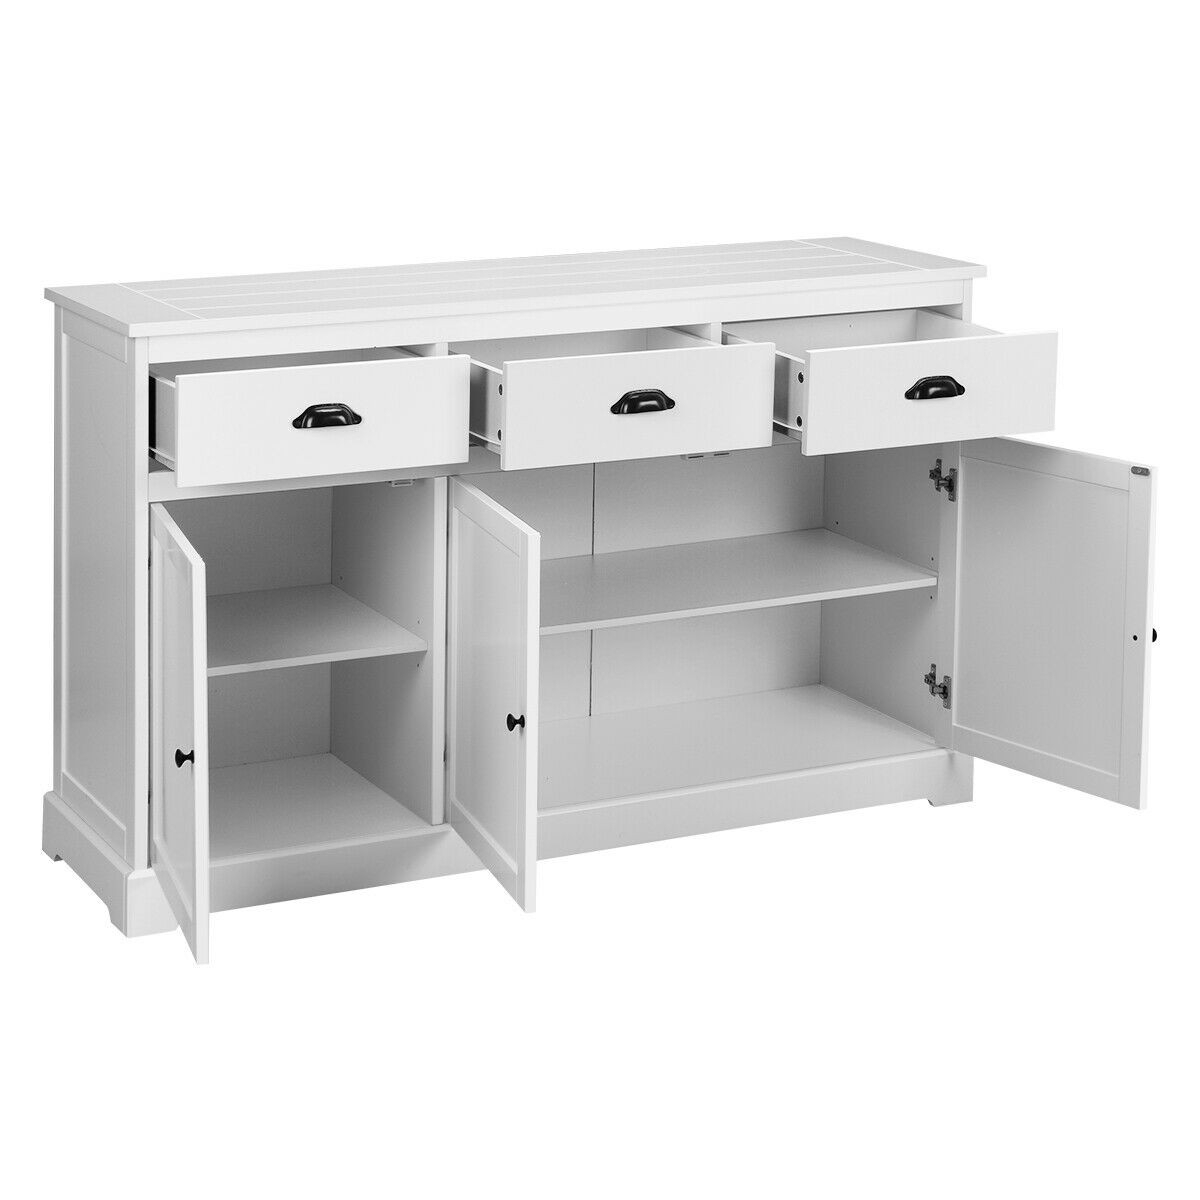 3 Drawers Console Table Sideboard Buffet Cabinet intended for 3-Drawer Storage Buffets (Image 1 of 30)